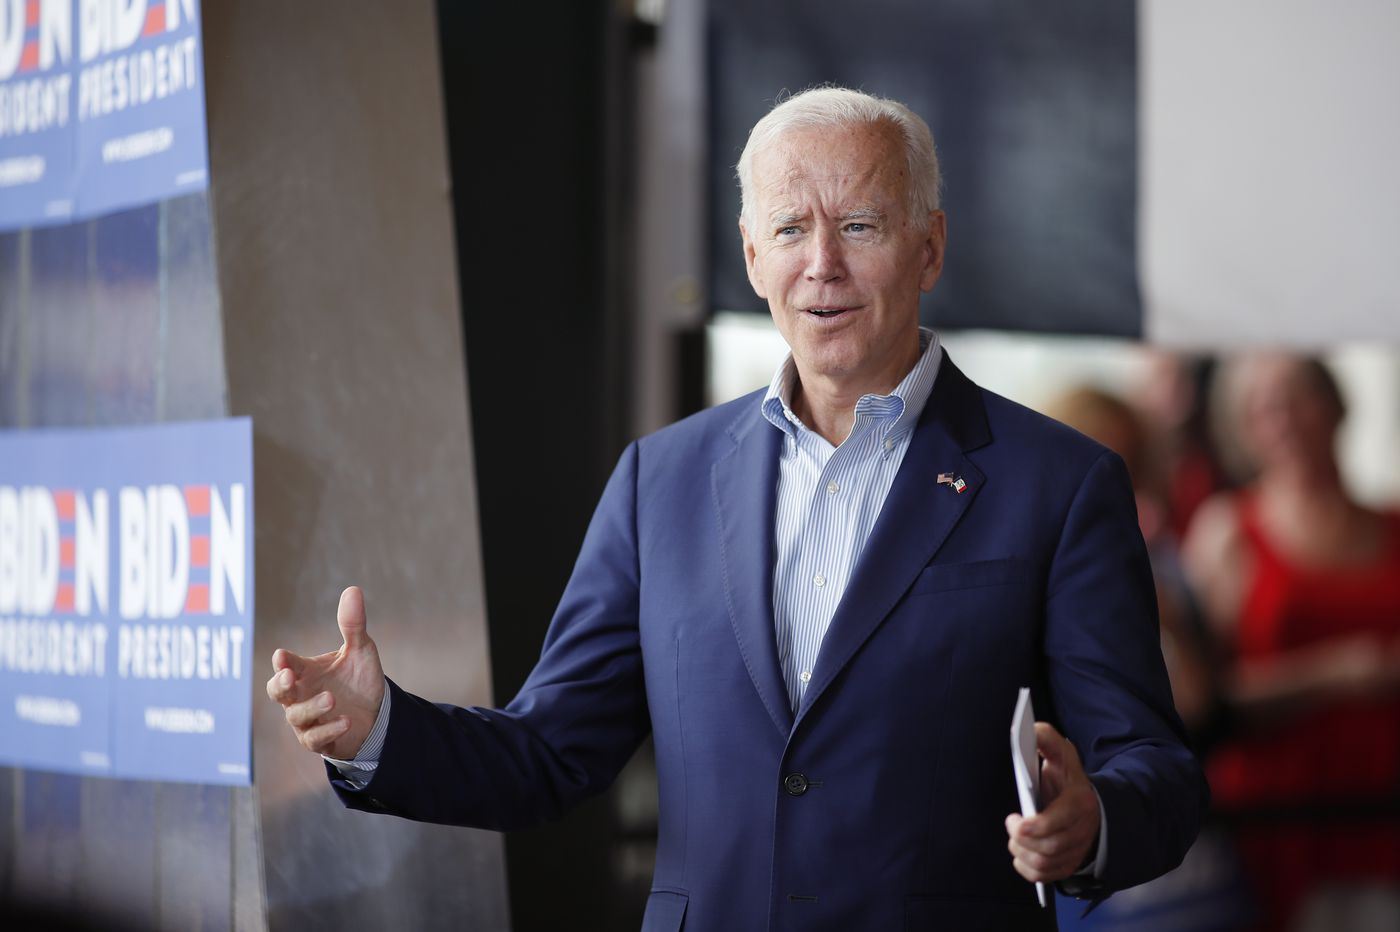 Biden delivers scathing address on Trump, and the president fires back